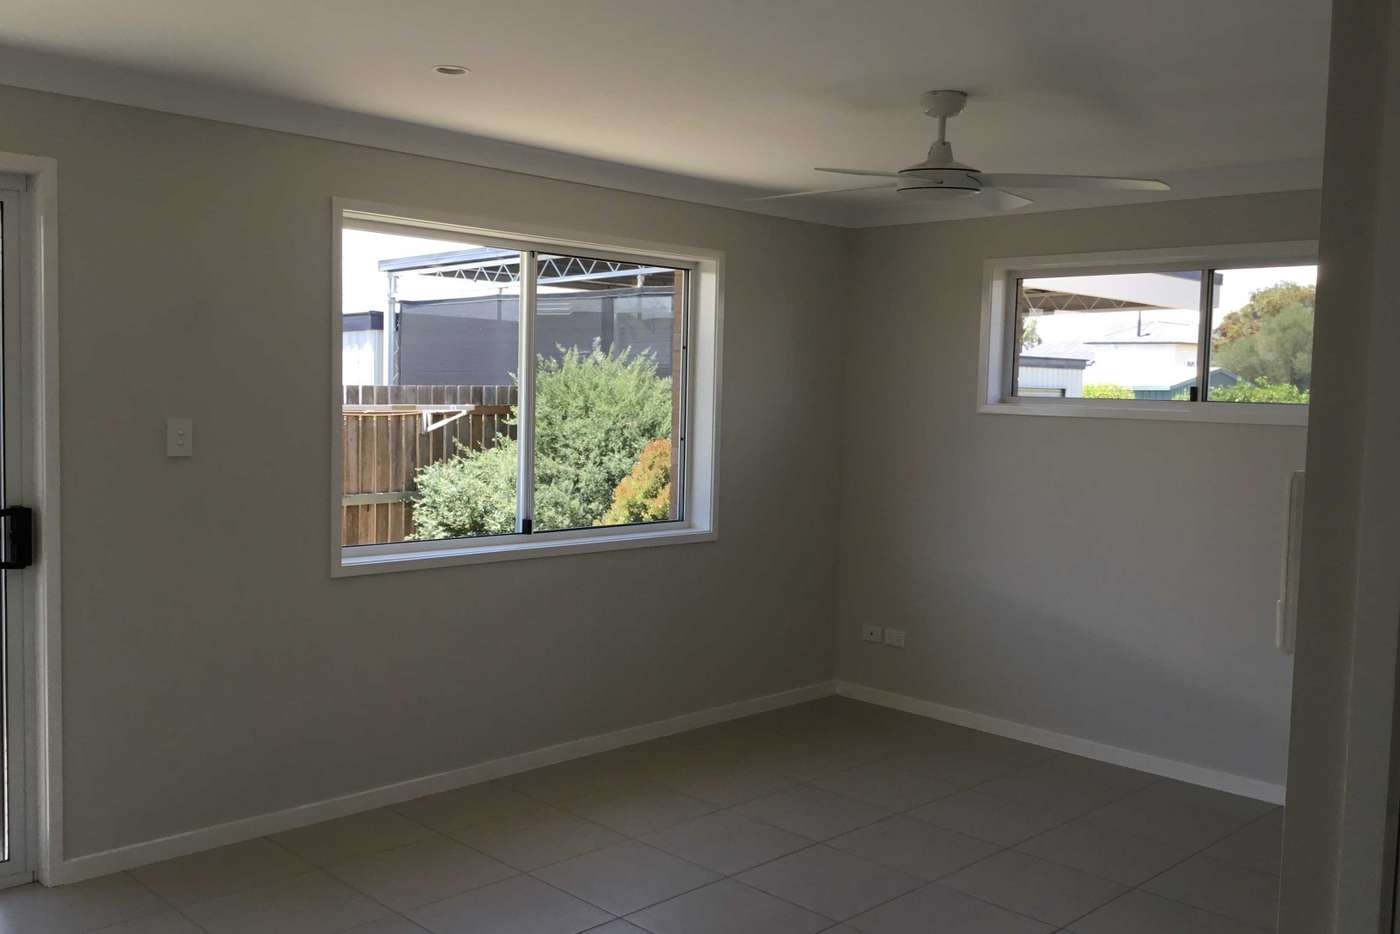 Sixth view of Homely house listing, 1/43 Pratten Street, Warwick QLD 4370